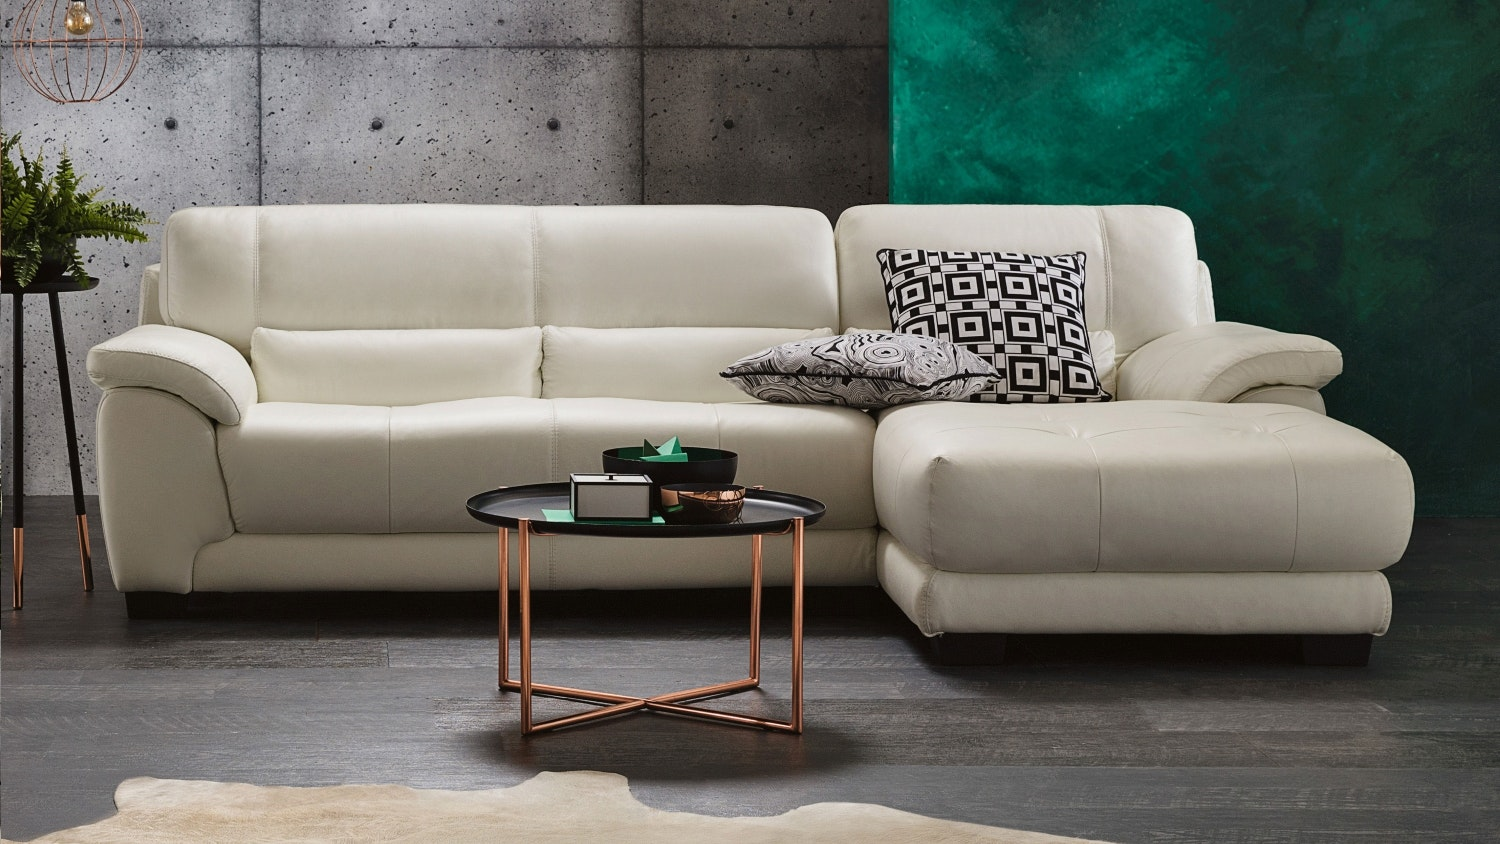 Longbeach 2.5 Seater Leather Sofa with Chaise